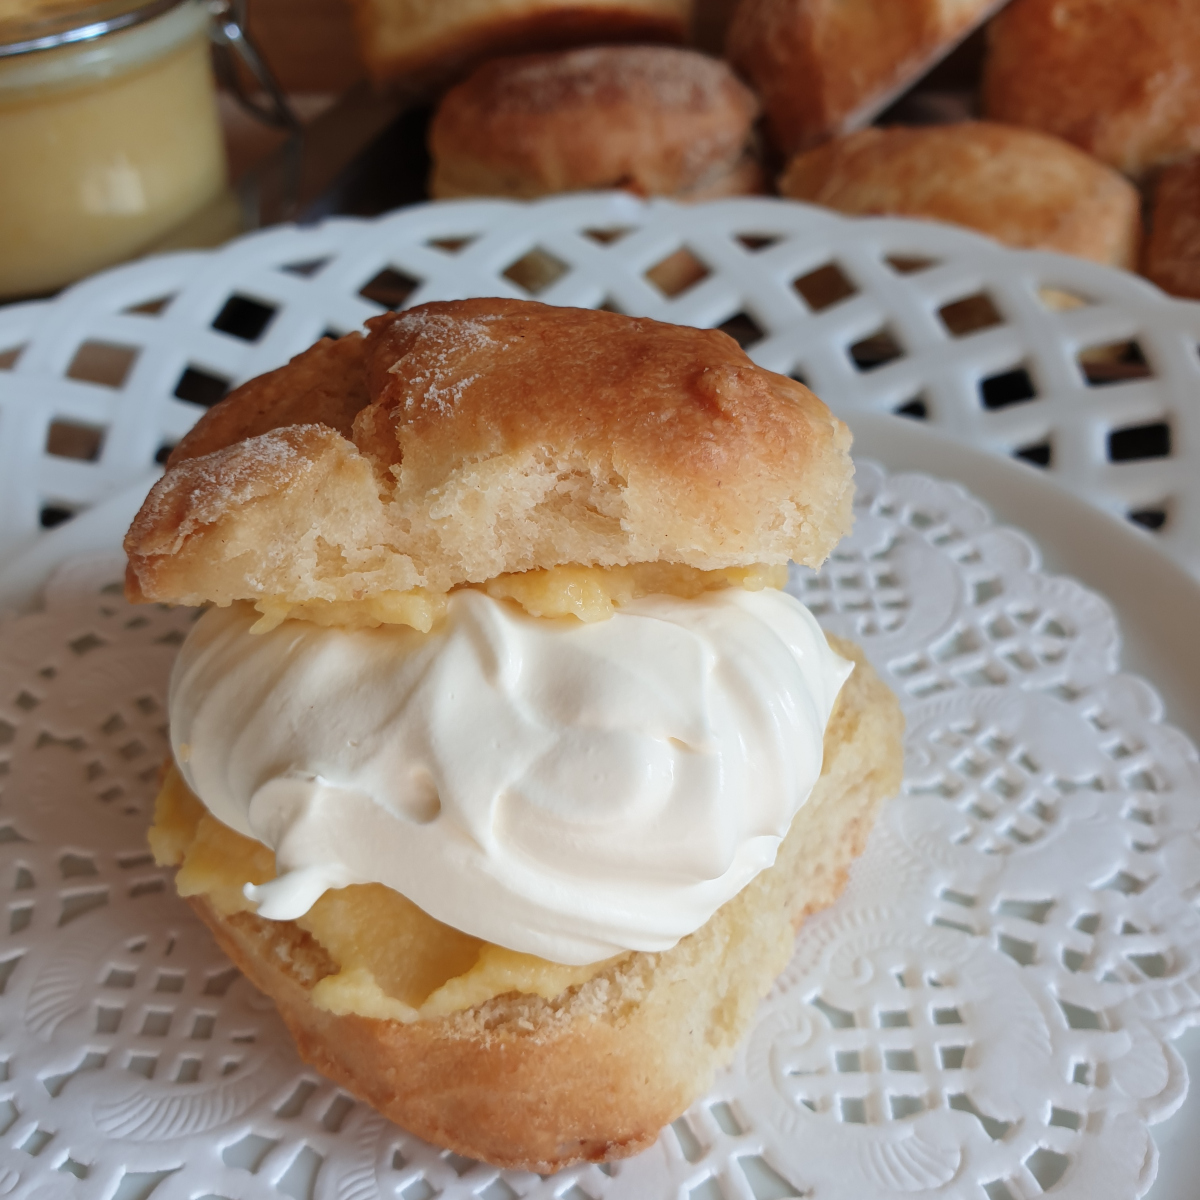 A lemonade scone filled with orange curd and whipped cream.